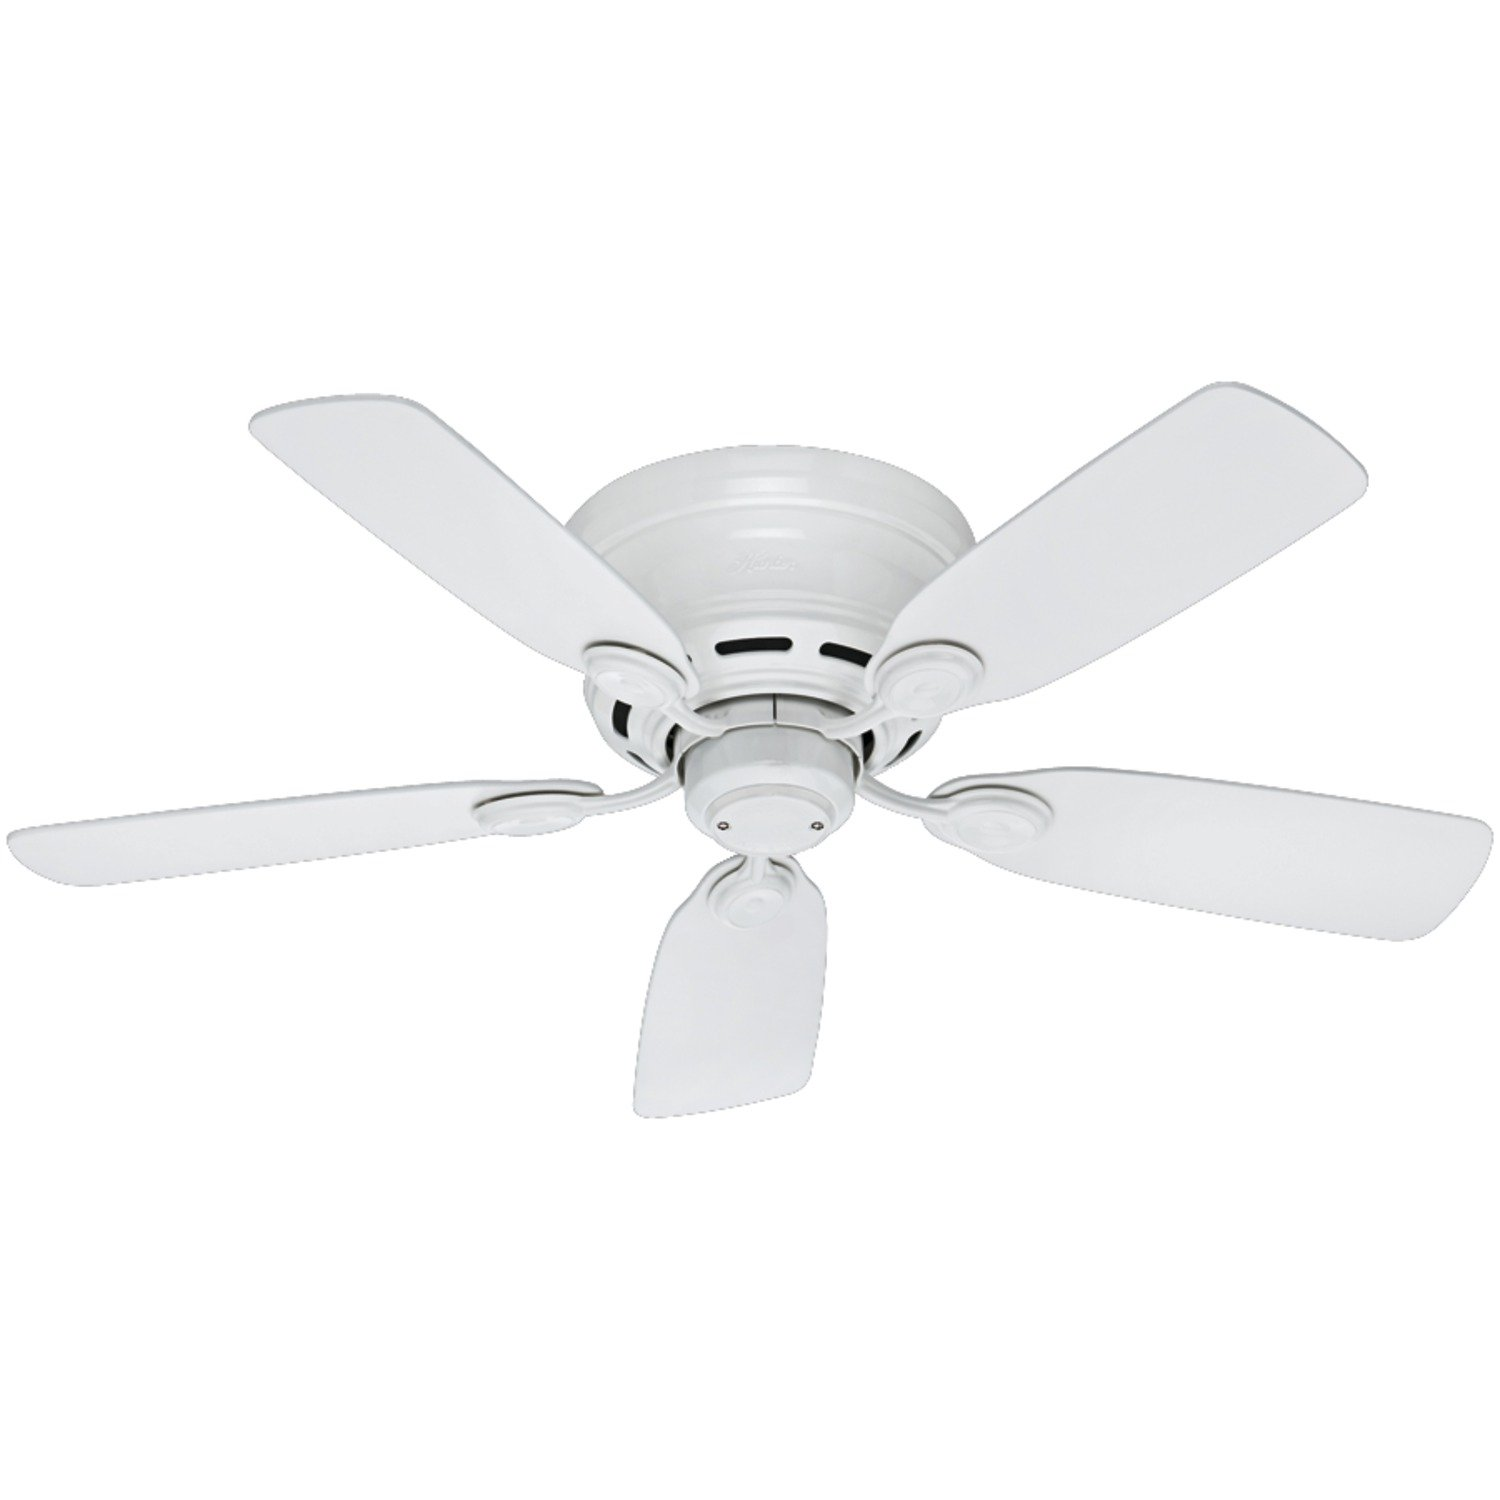 Hunter 51059 Low Profile IV 5-Blade Ceiling Fan, 42-Inch, White ...